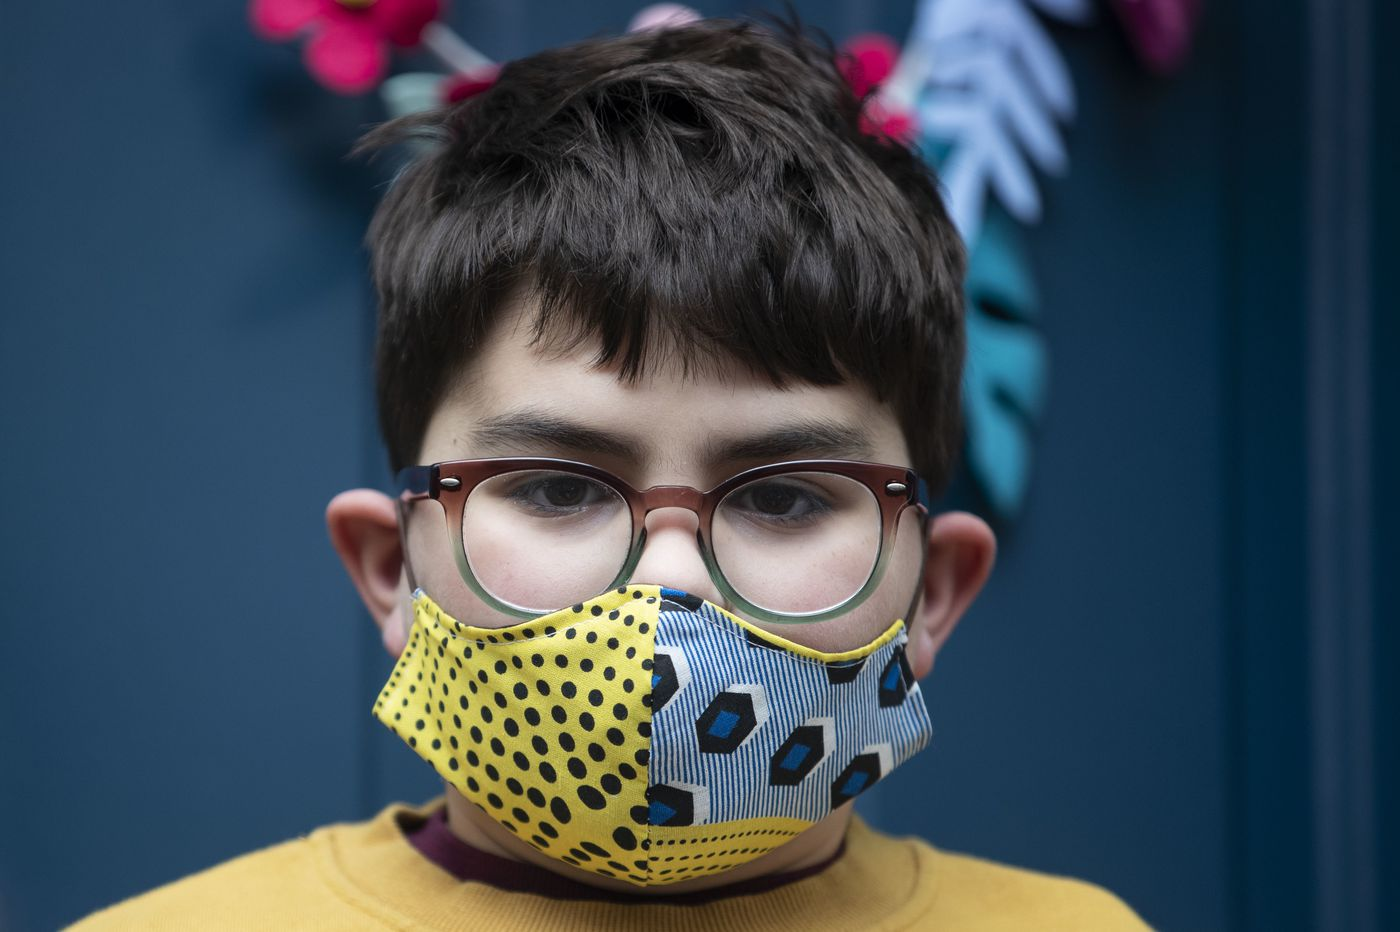 How to wear a mask and not fog up your glasses